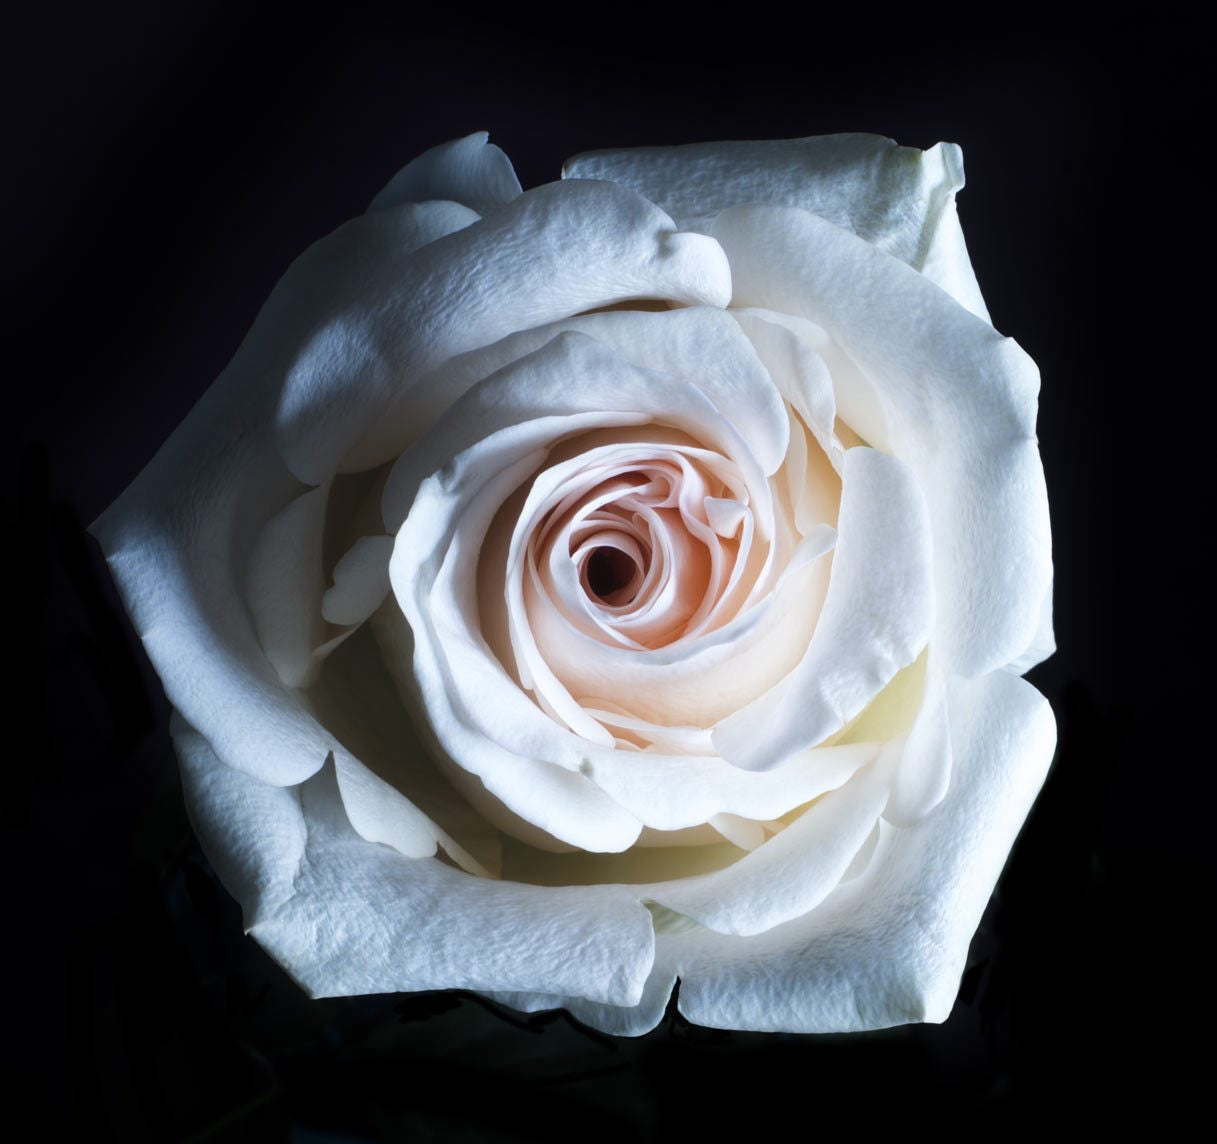 collections/white-rose-close-up.jpg